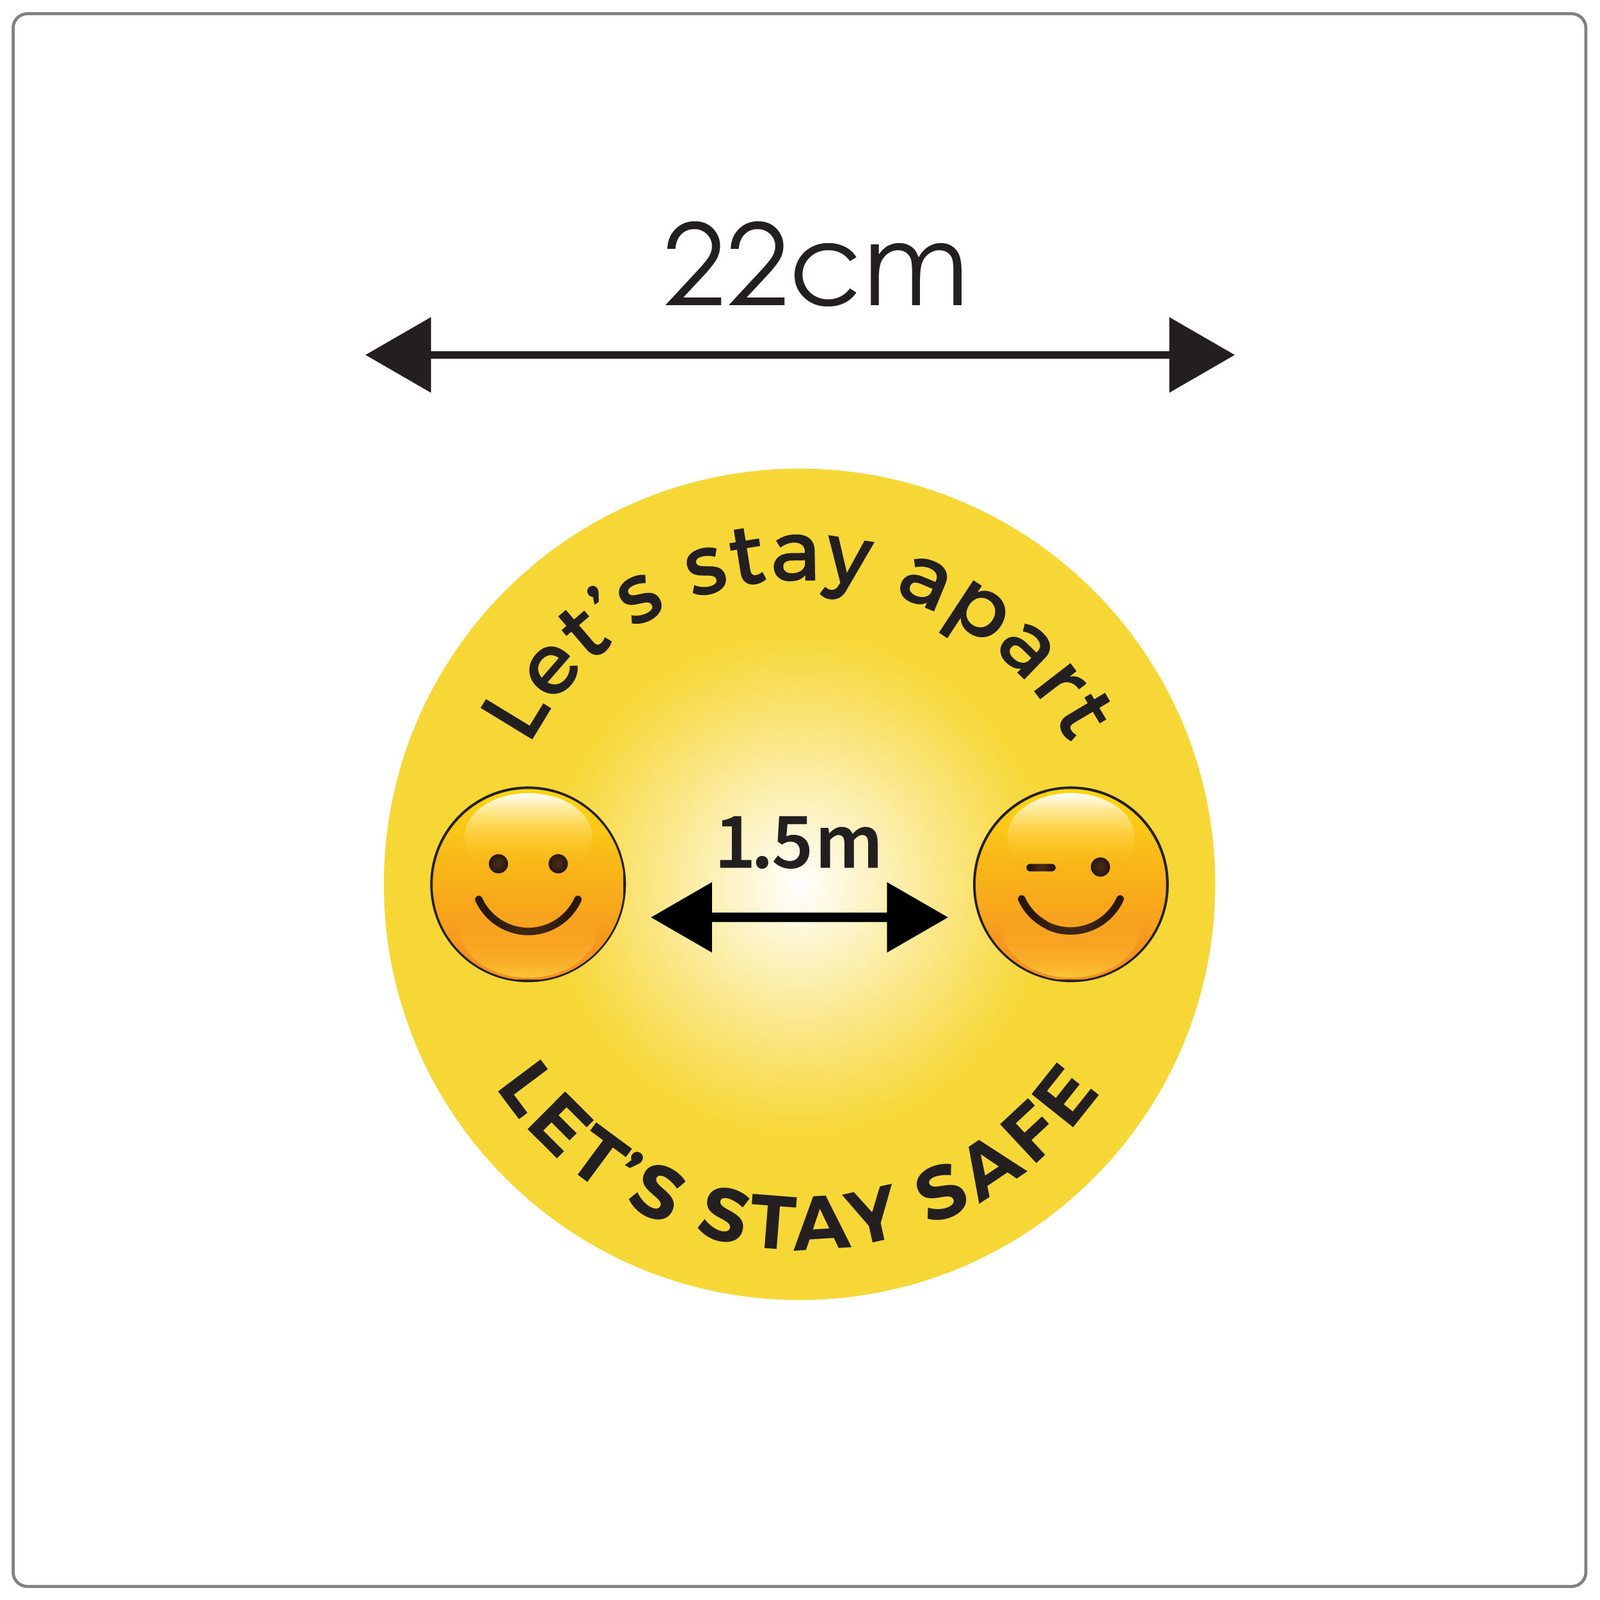 1.5 metres social distancing floor sign for outdoors, size, emoji Self-adhesive Corona floor marker safety floor sticker for COVID-19